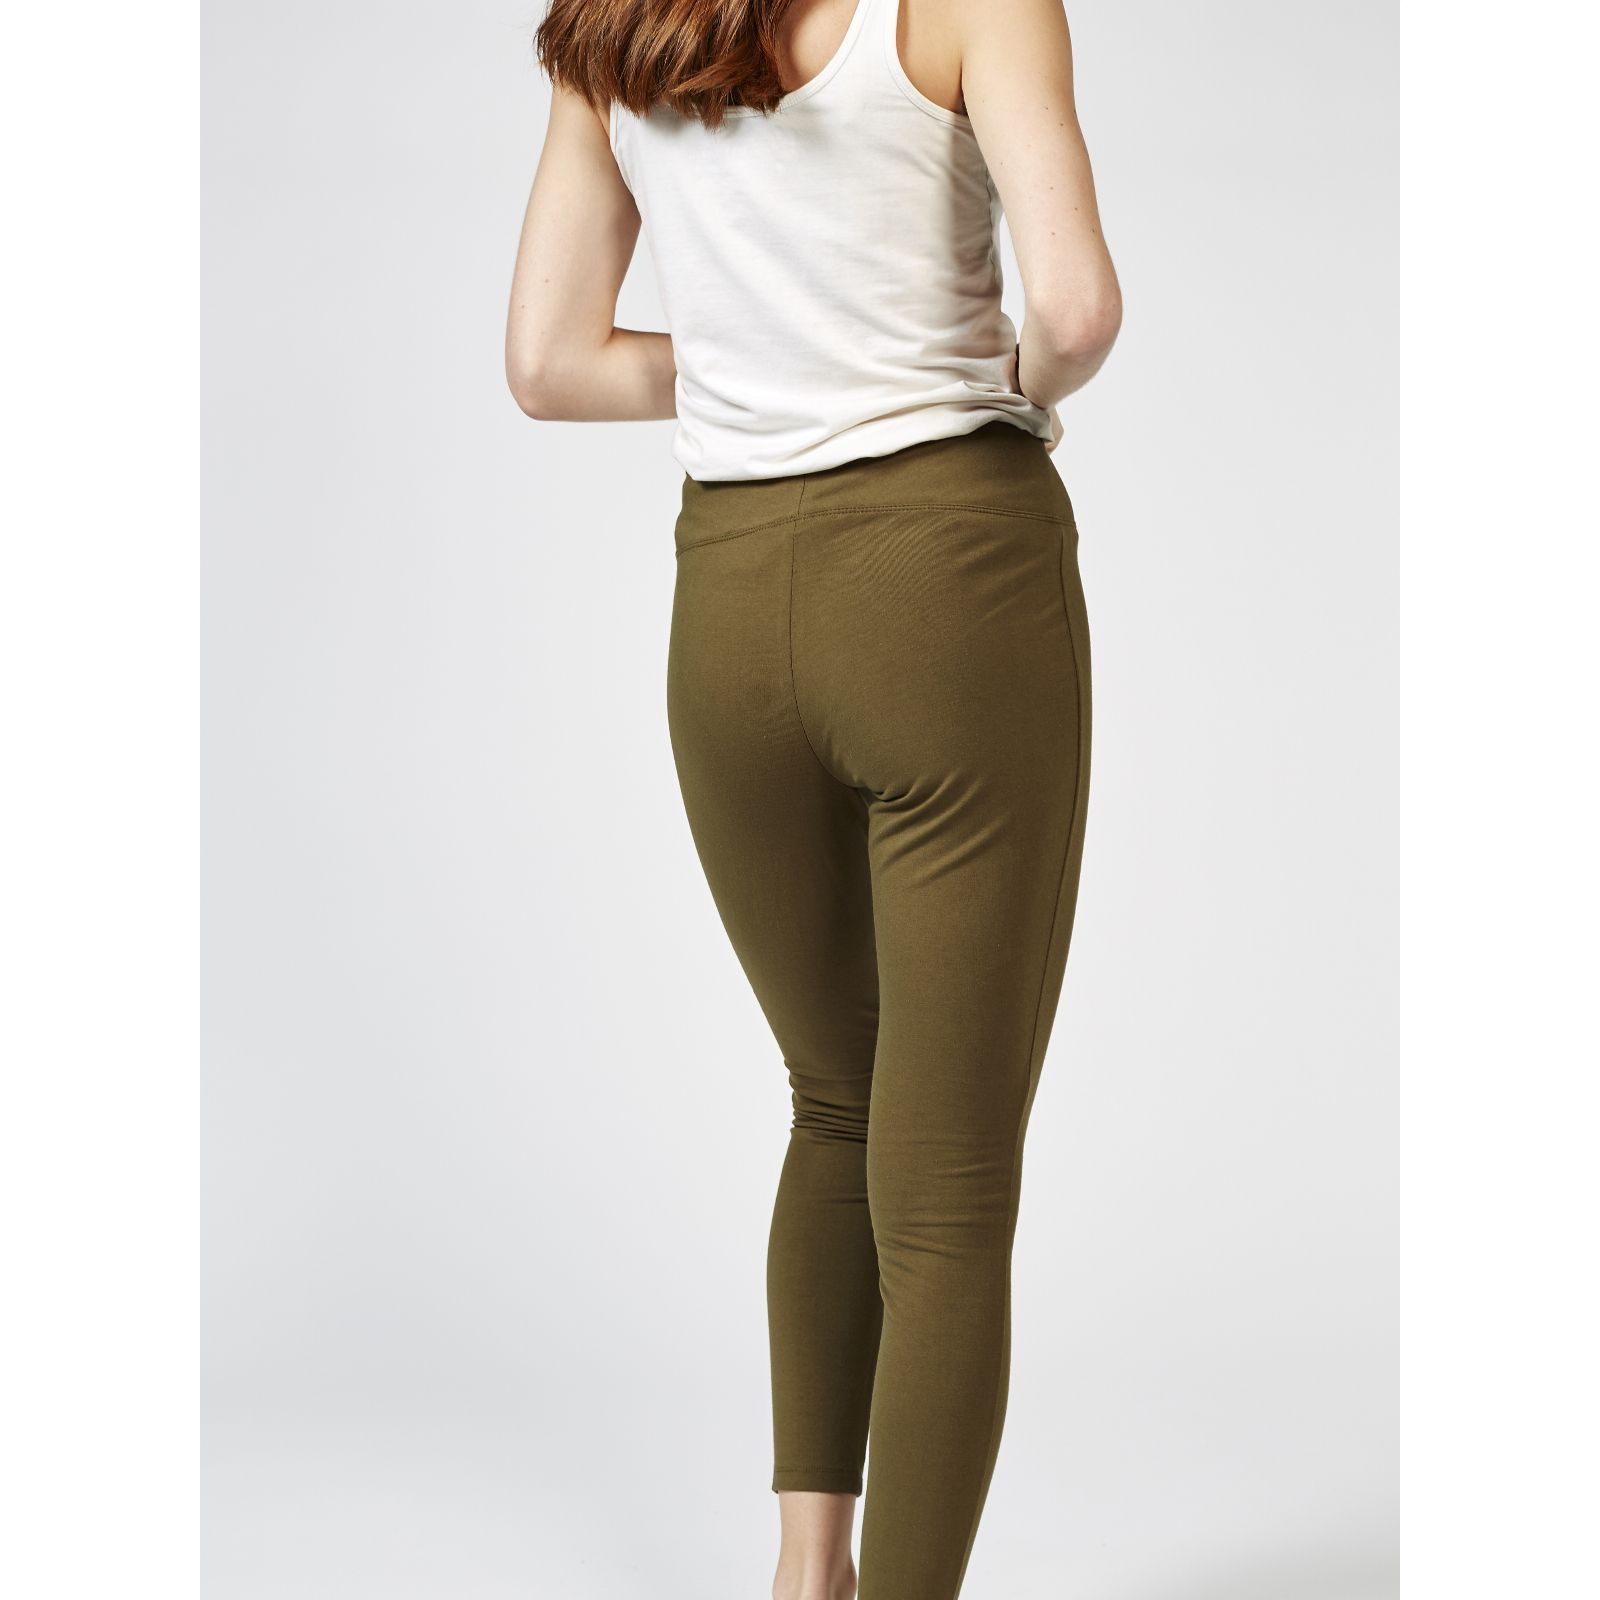 9d7ac3192bbd7 Wicked by Women with Control Pull On Leggings - QVC UK